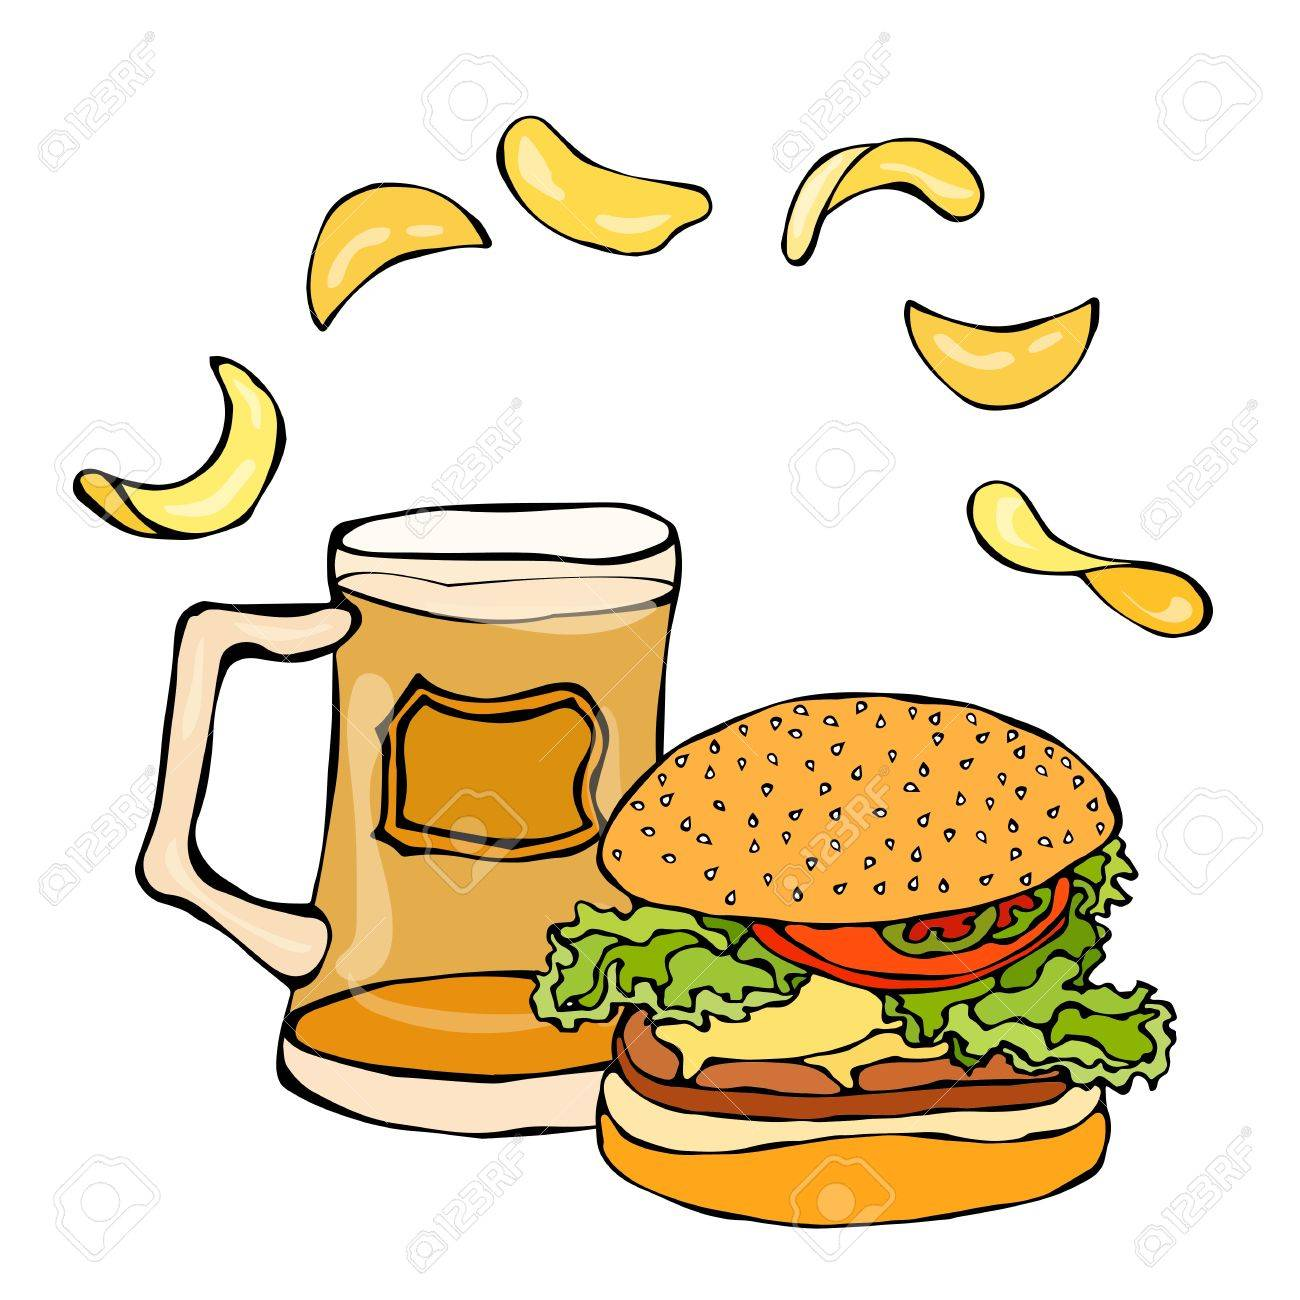 Big Hamburger Or Cheeseburger Beer Mug Or Pint And Potato Chips Royalty Free Cliparts Vectors And Stock Illustration Image 79905965